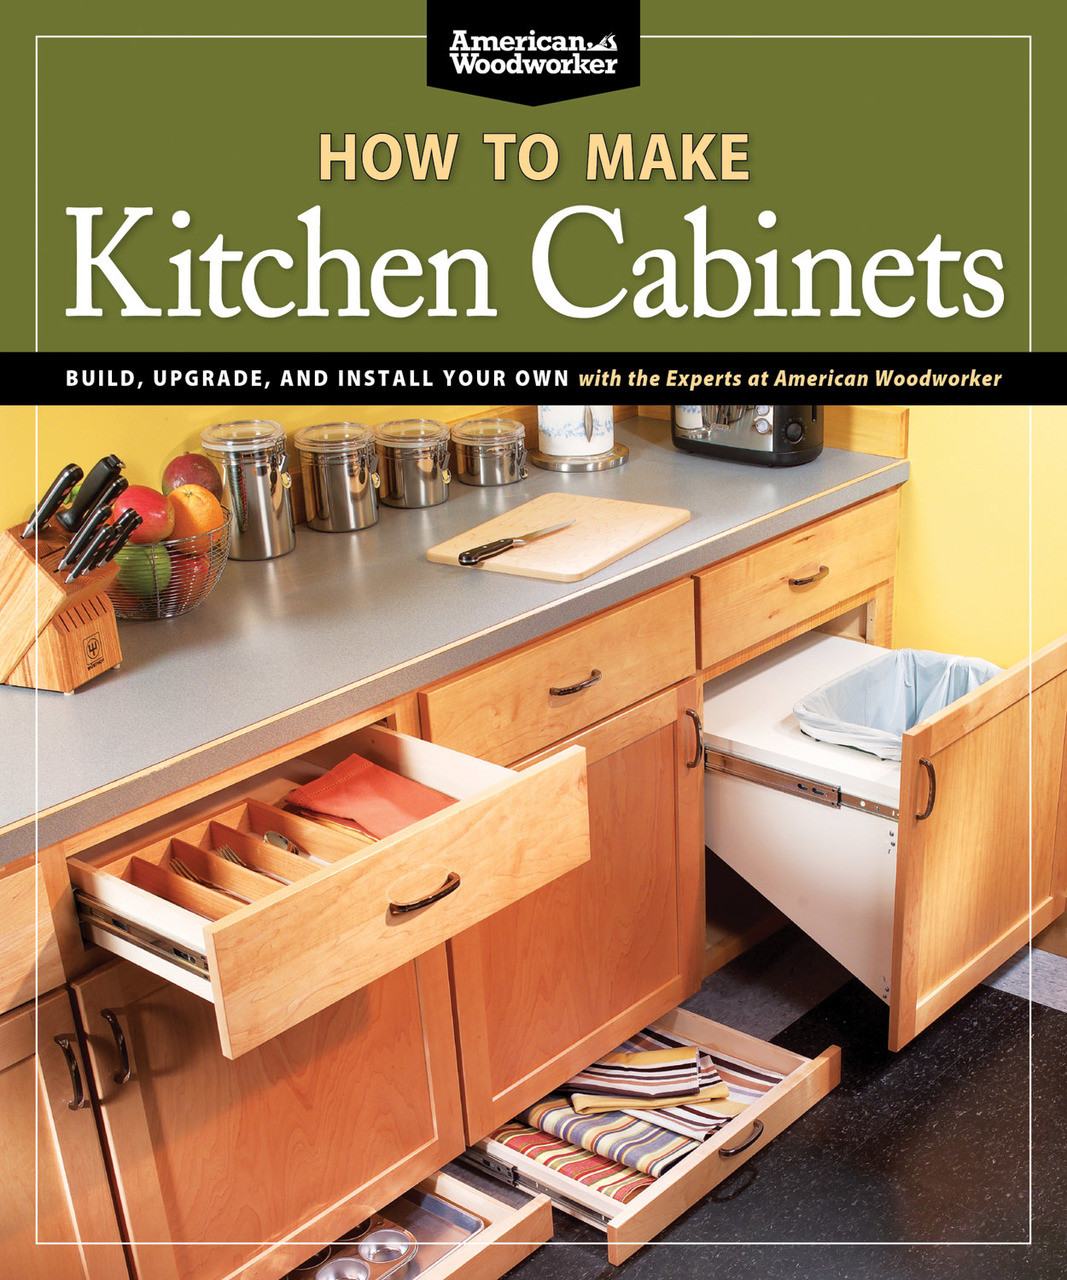 How To Make Kitchen Cabinets Best Of American Woodworker Build Upgrade And Install Your Own With The Experts At American Woodworker